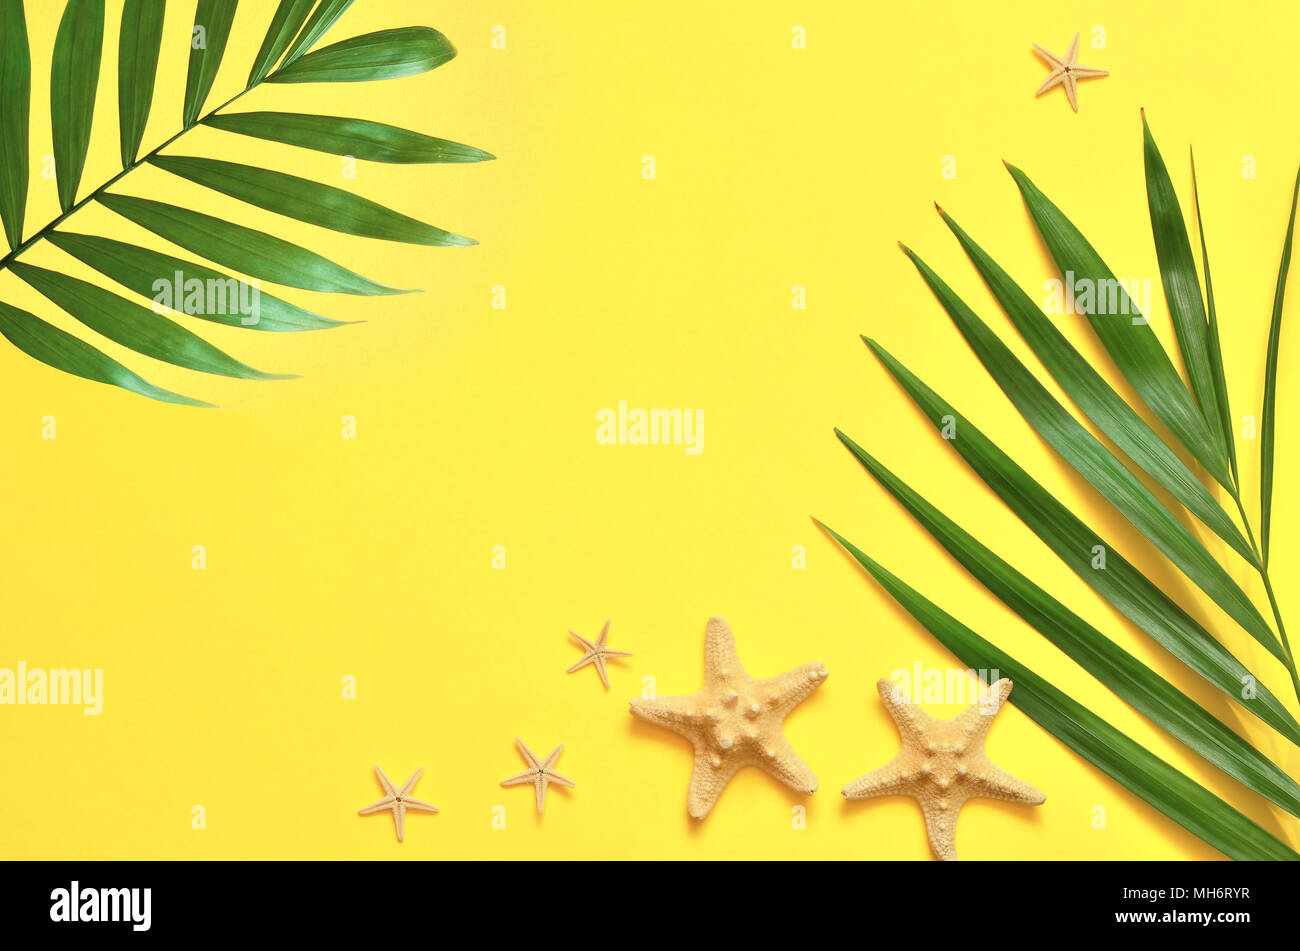 Tropical Background. Palm Trees Branches with starfish on yellow background. Travel. Copy space. Stock Photo